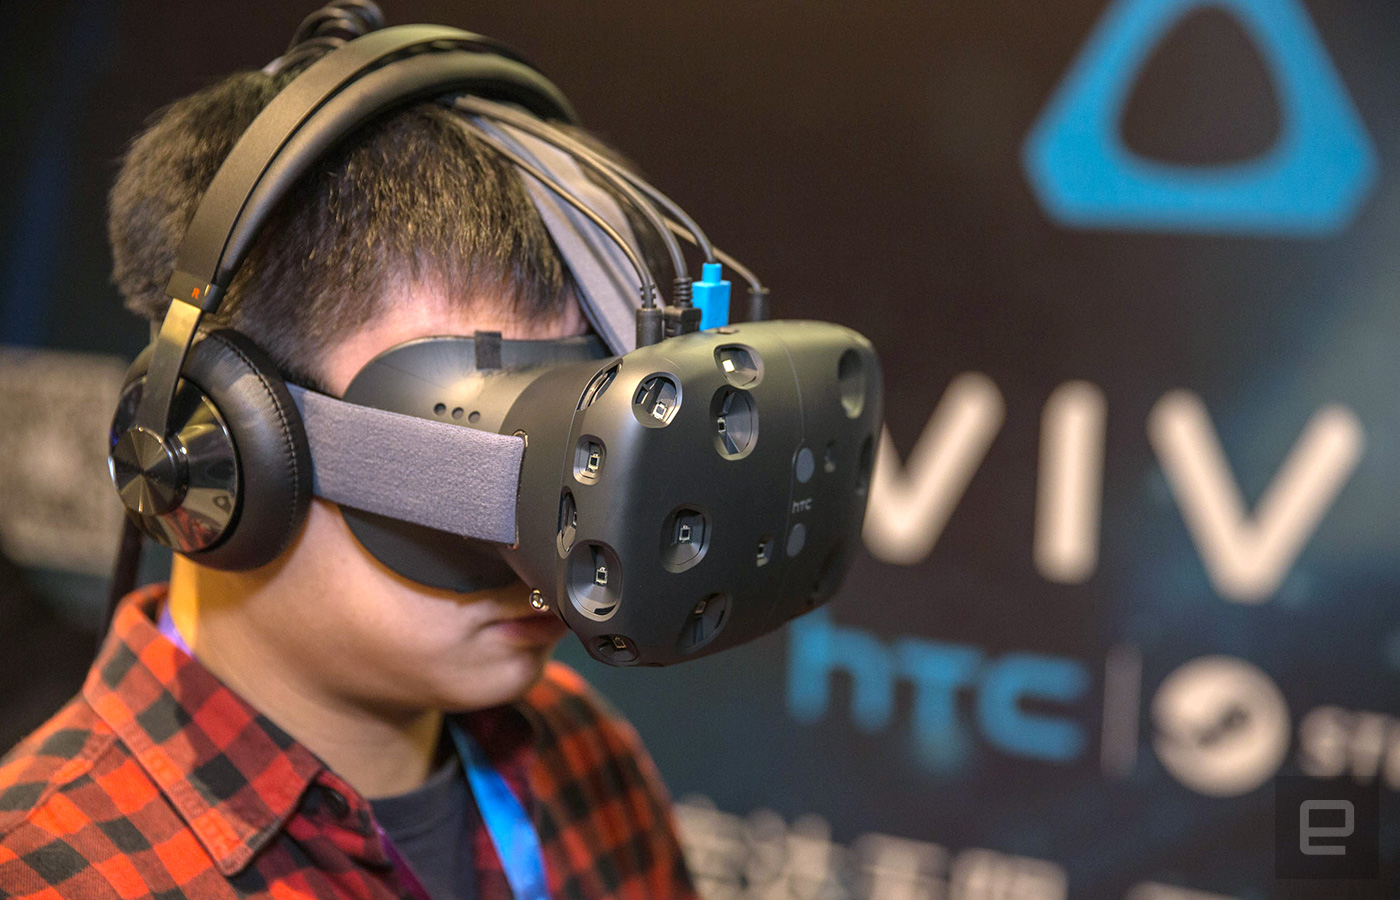 A real breakthrough in virtual reality - HTC Valve Vive